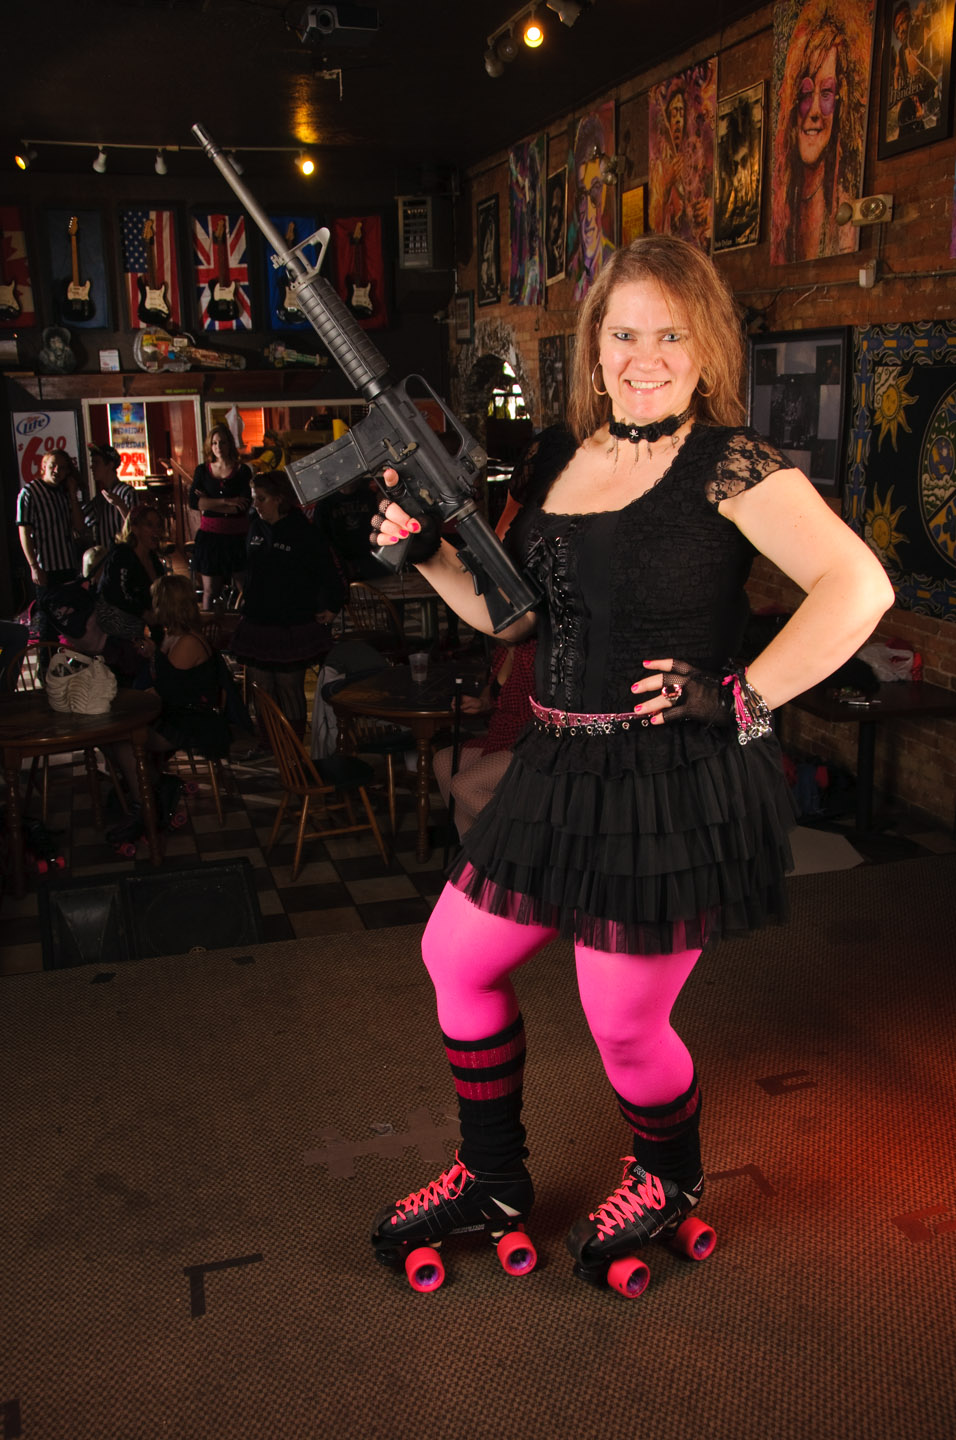 Someone brought a gun as a prop for her roller derby photo